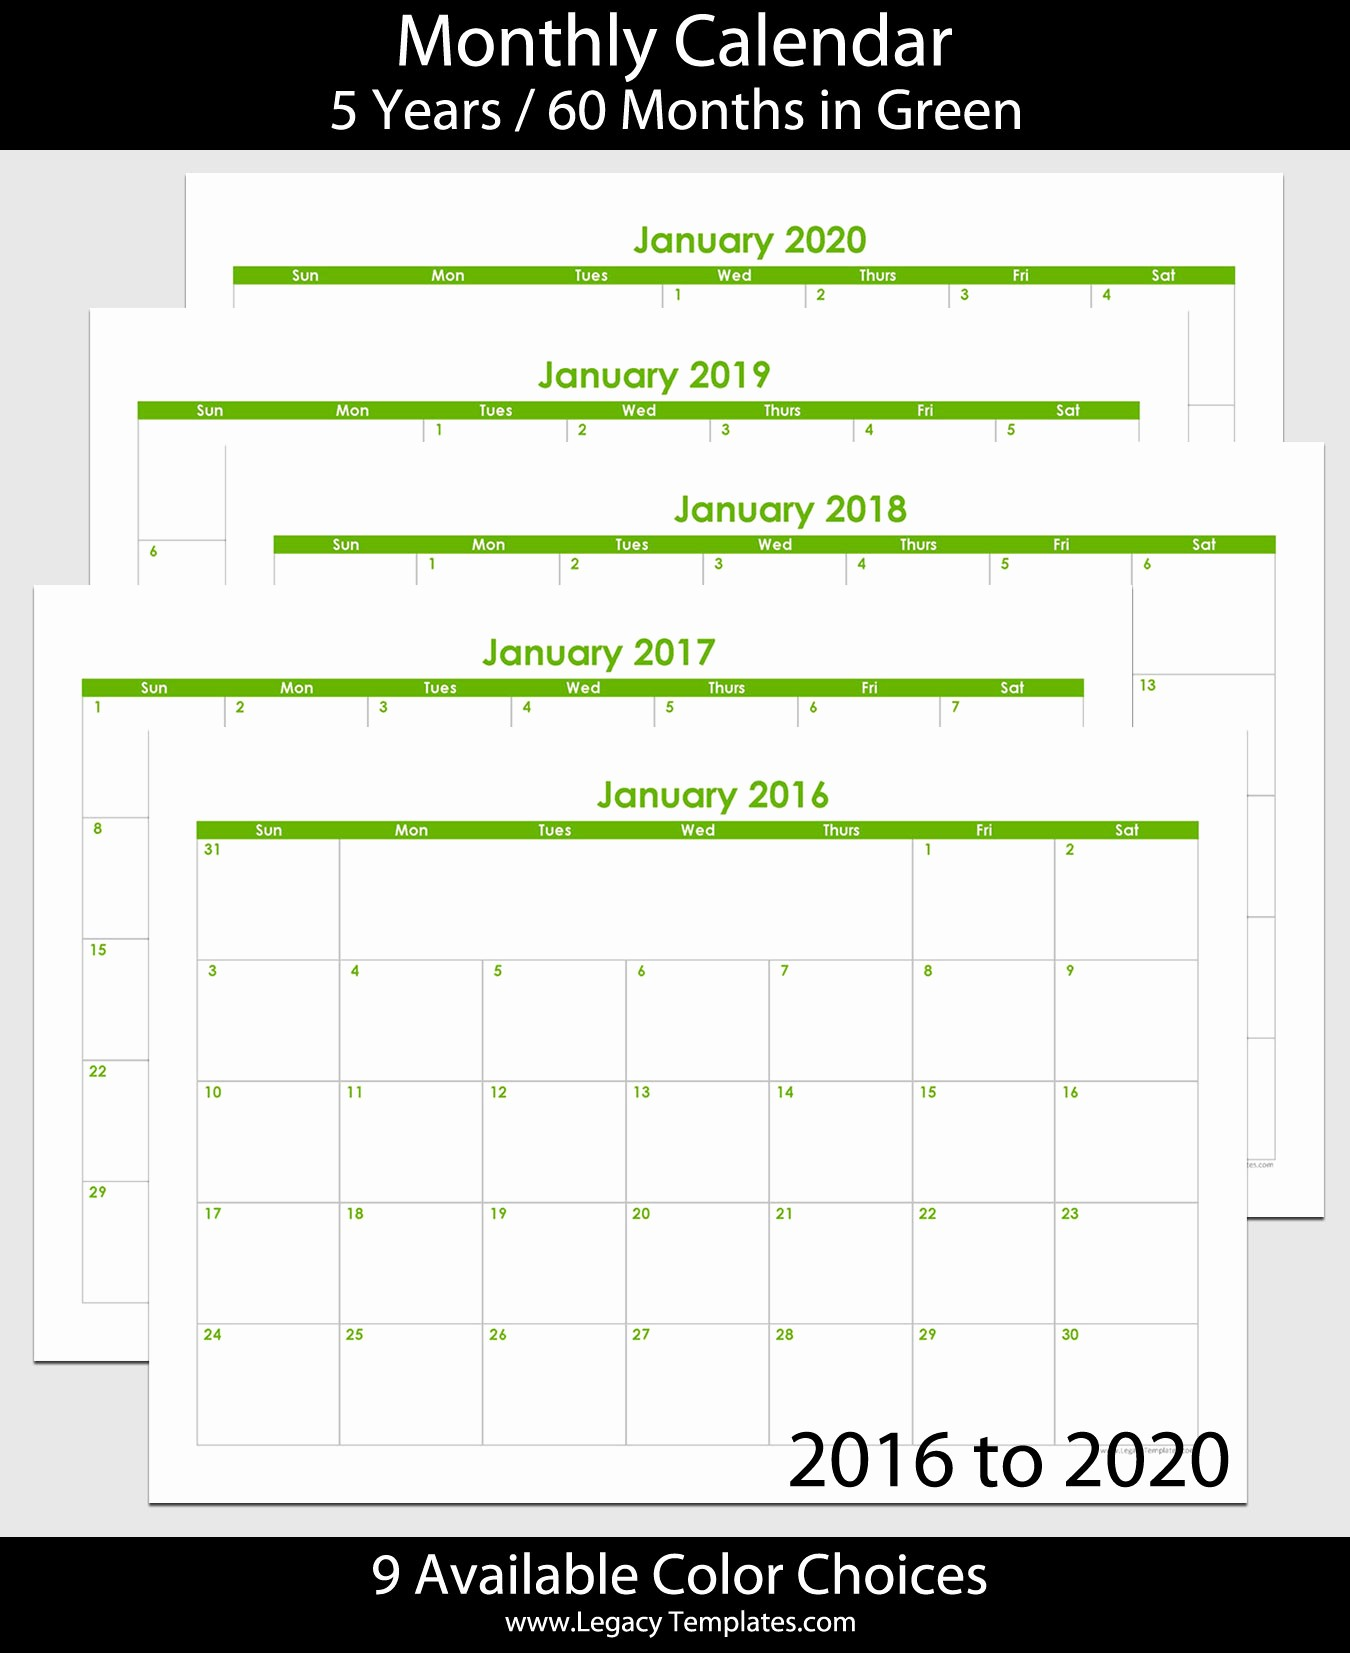 5 Year Calendar Starting 2016 Awesome 2016 to 2020 60 Month Landscape Calendar – A5